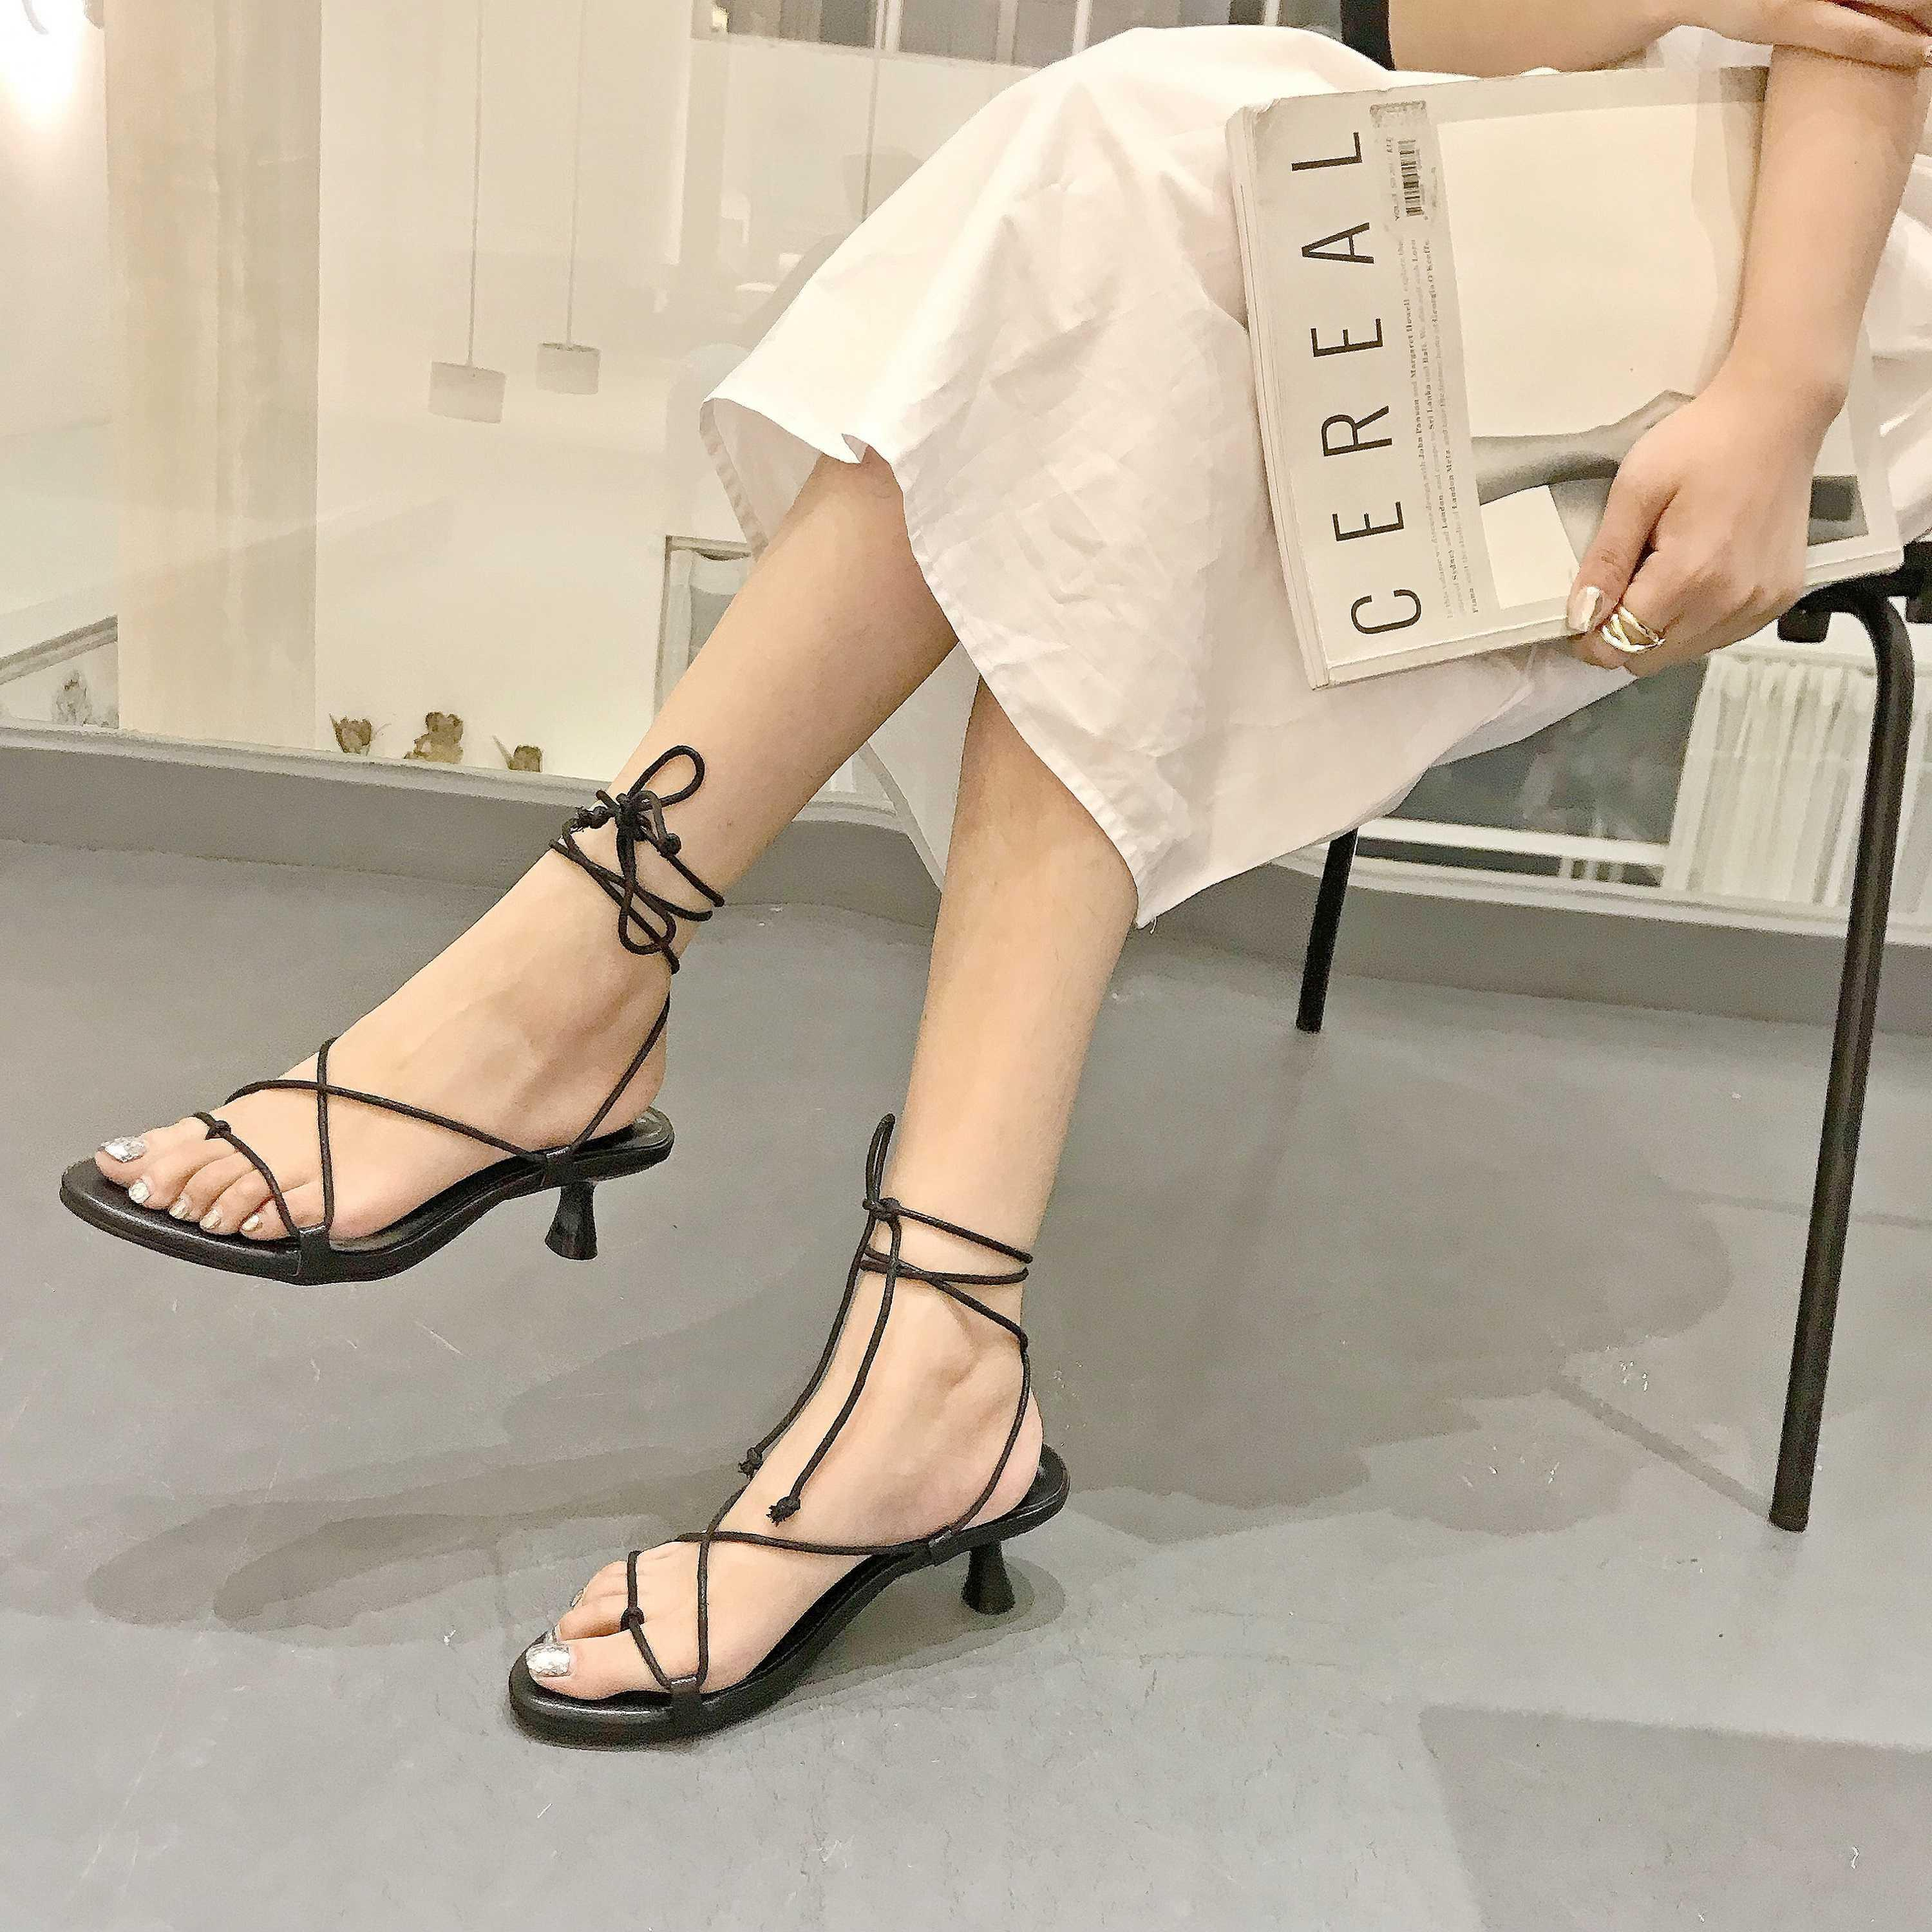 Crystal2019 Wine Glass Fit Ring Bandage Rome Woman Sandals On Vacation High-heeled Shoes